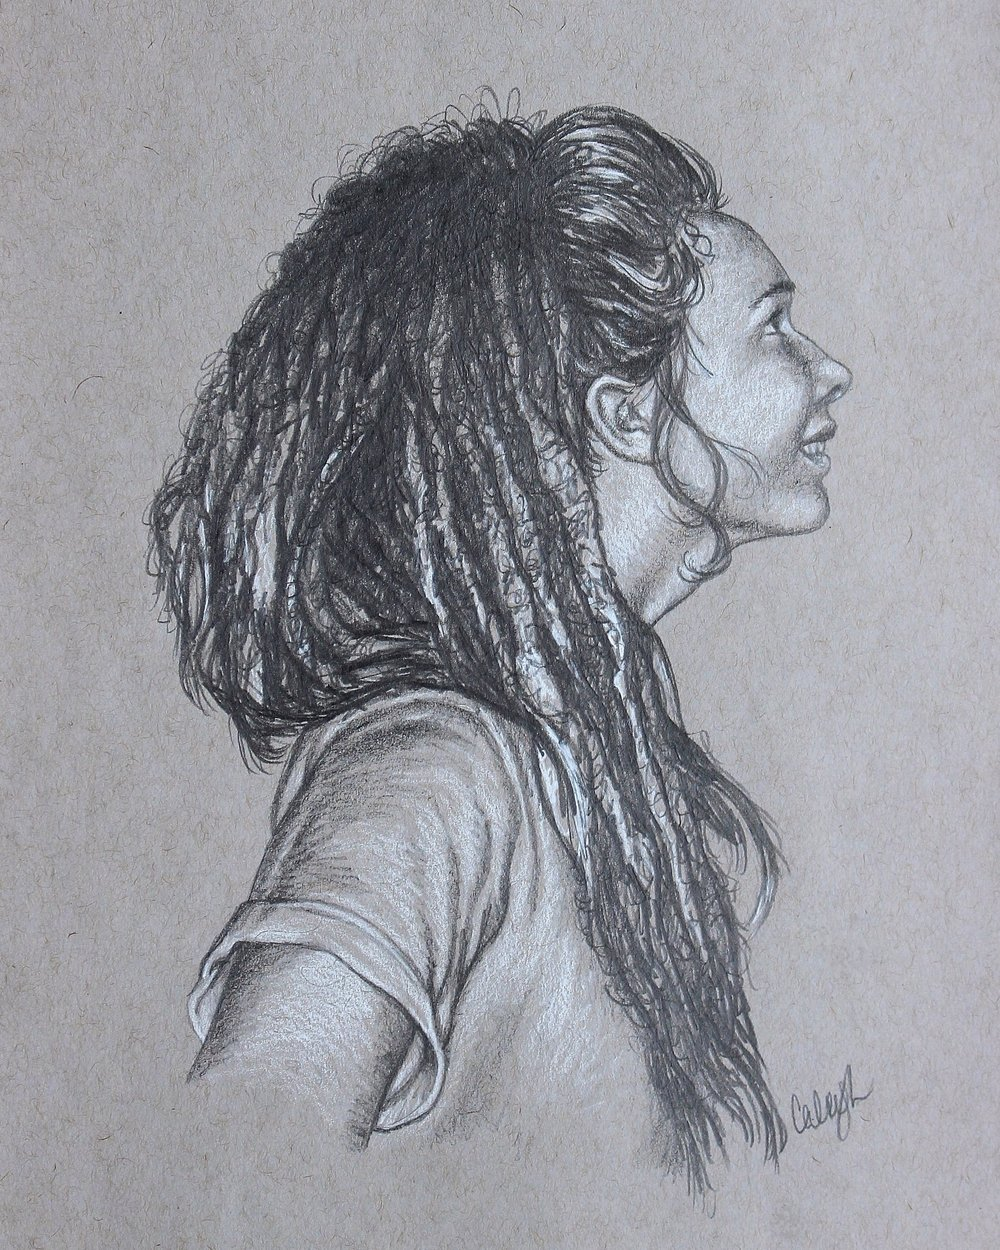 custom portrait drawing of a young dreadlocked girl